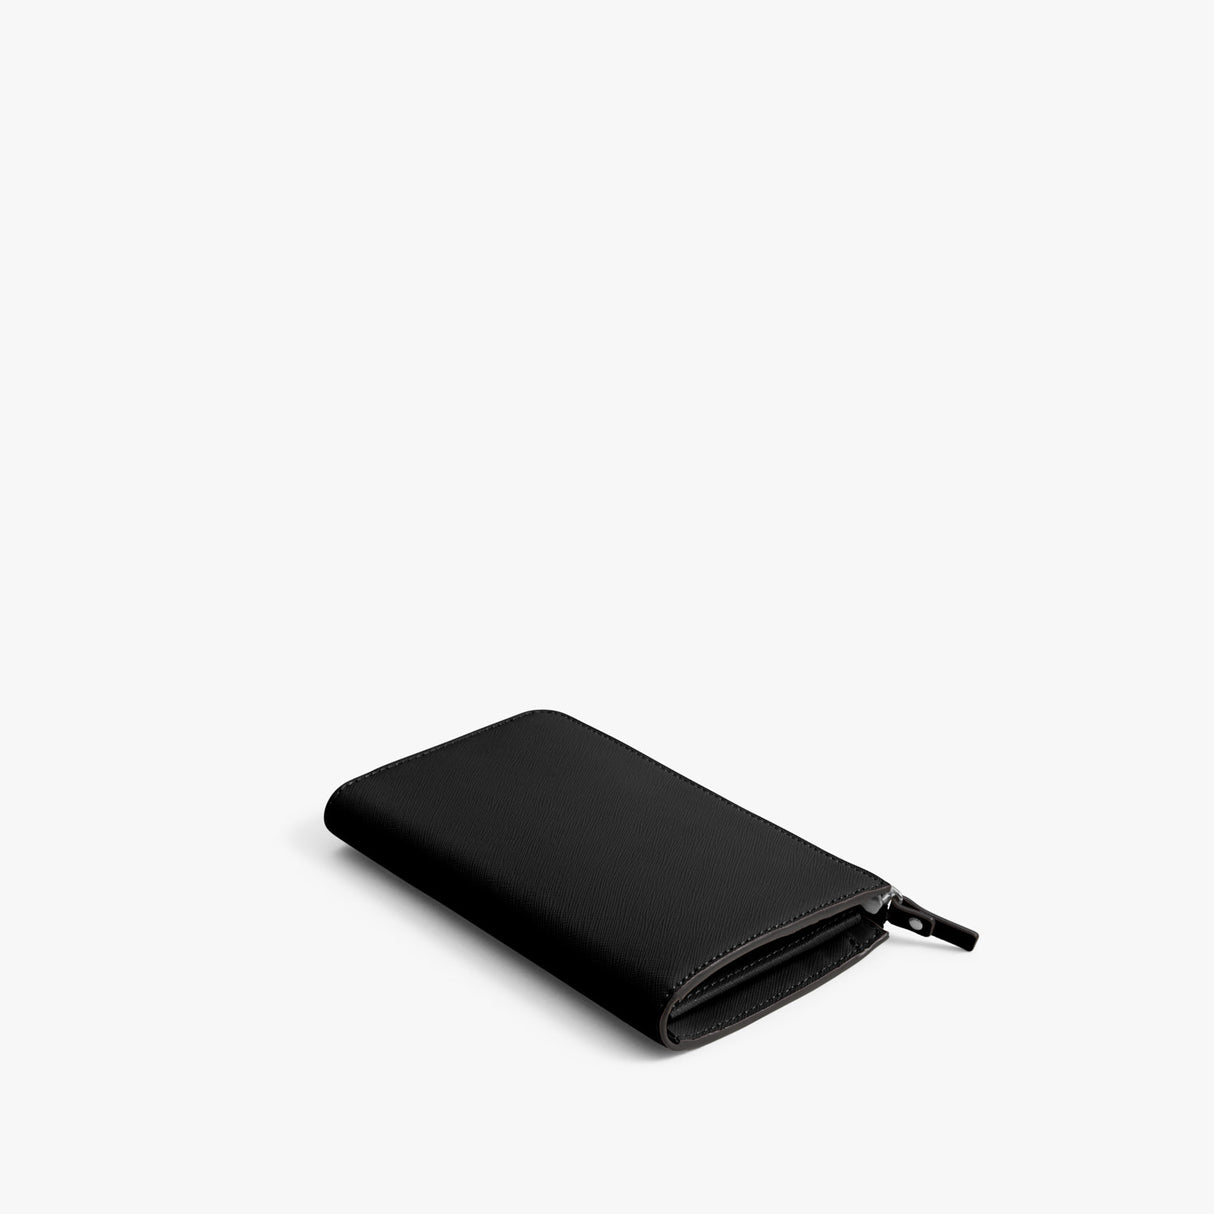 Back - Leather Wallet - Saffiano Leather - Black / Silver / Grey - Small Accessory - Lo & Sons